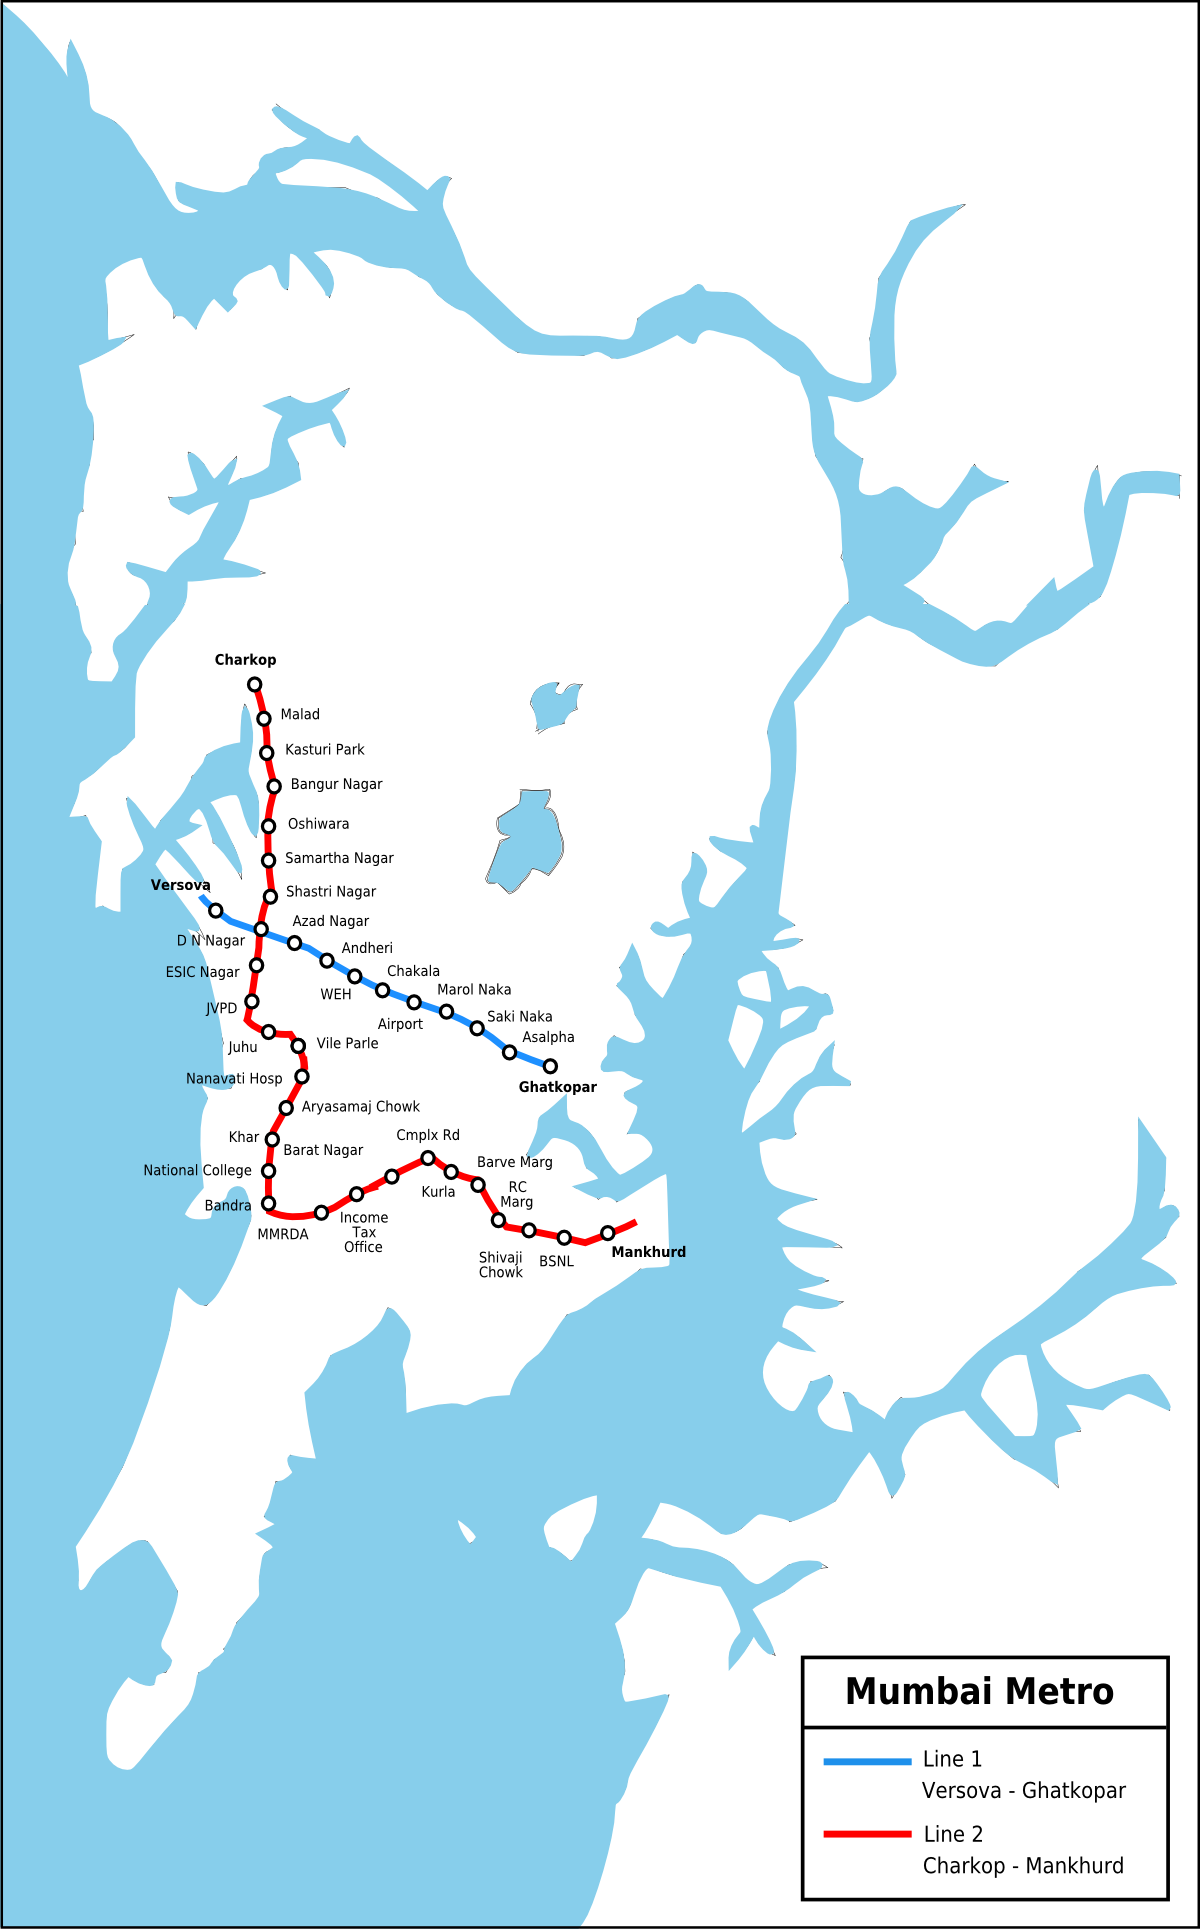 Mumbai Metro - Wikipedia, the free encyclopedia